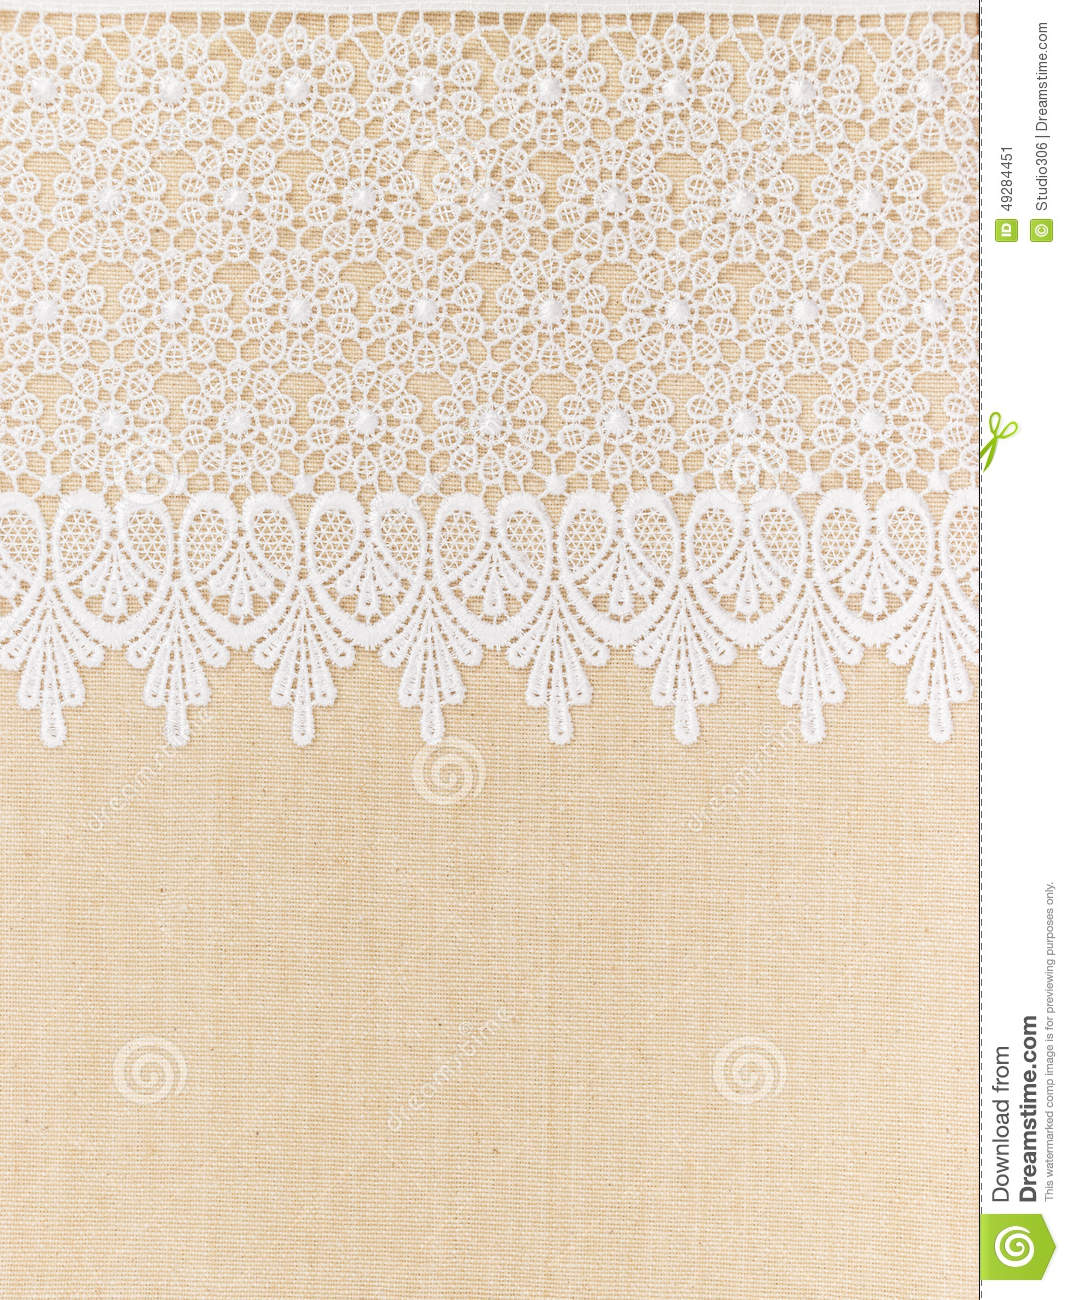 lace stock image image of border template design cover 49284451